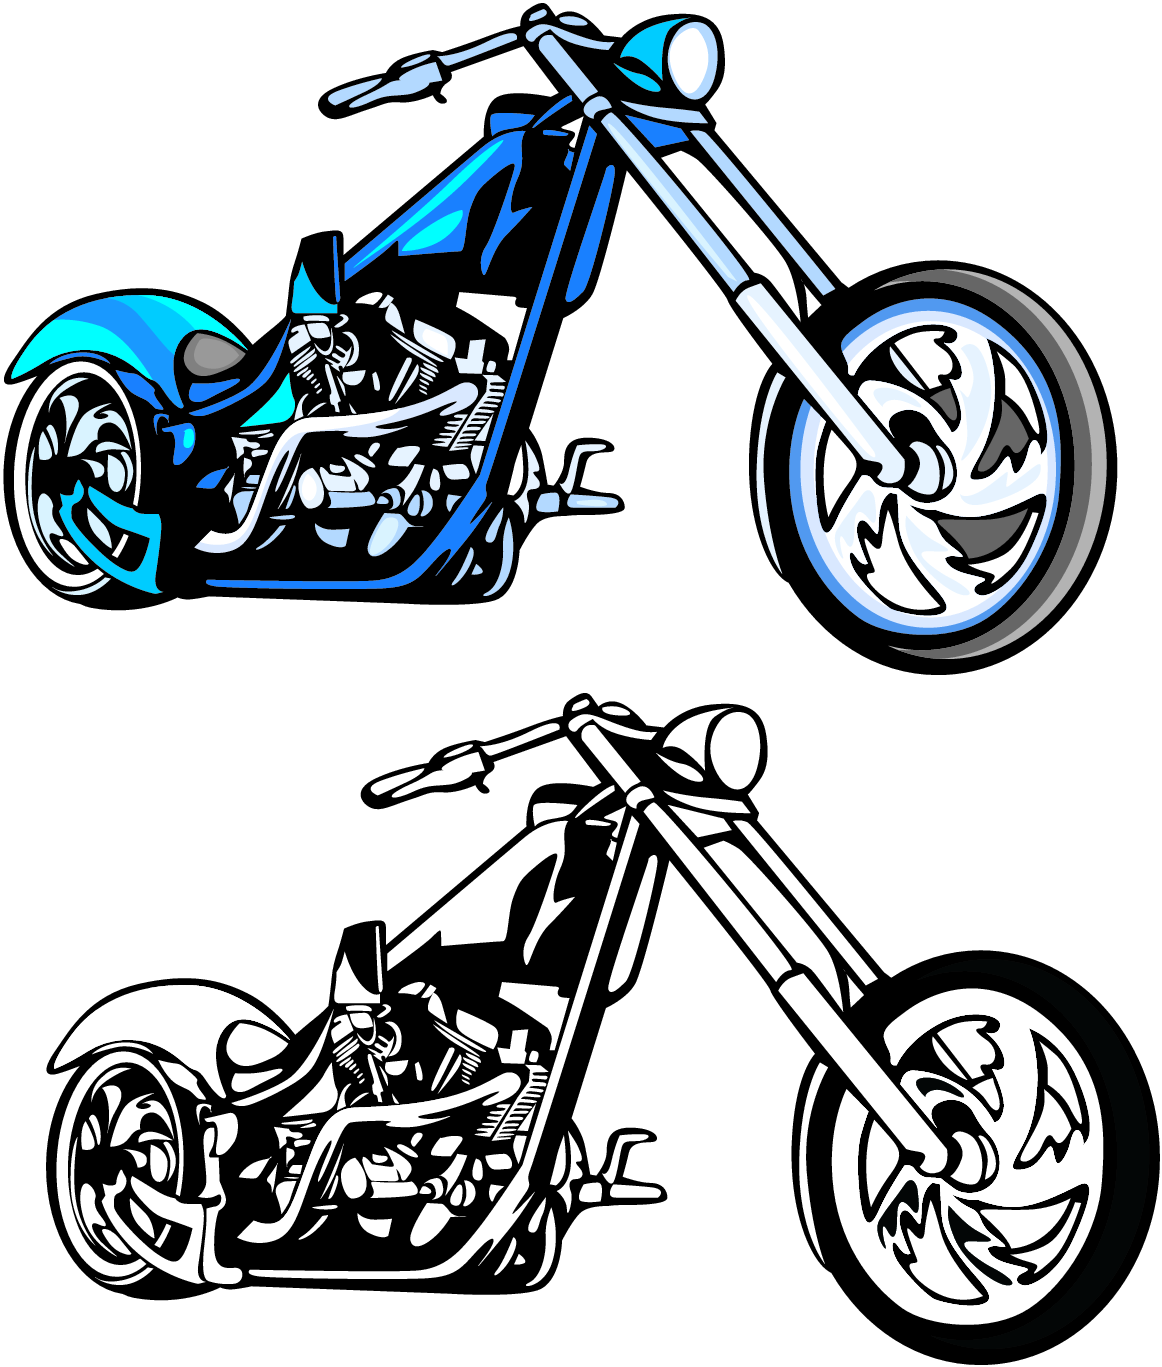 Harley Davidson clipart silhouette #14